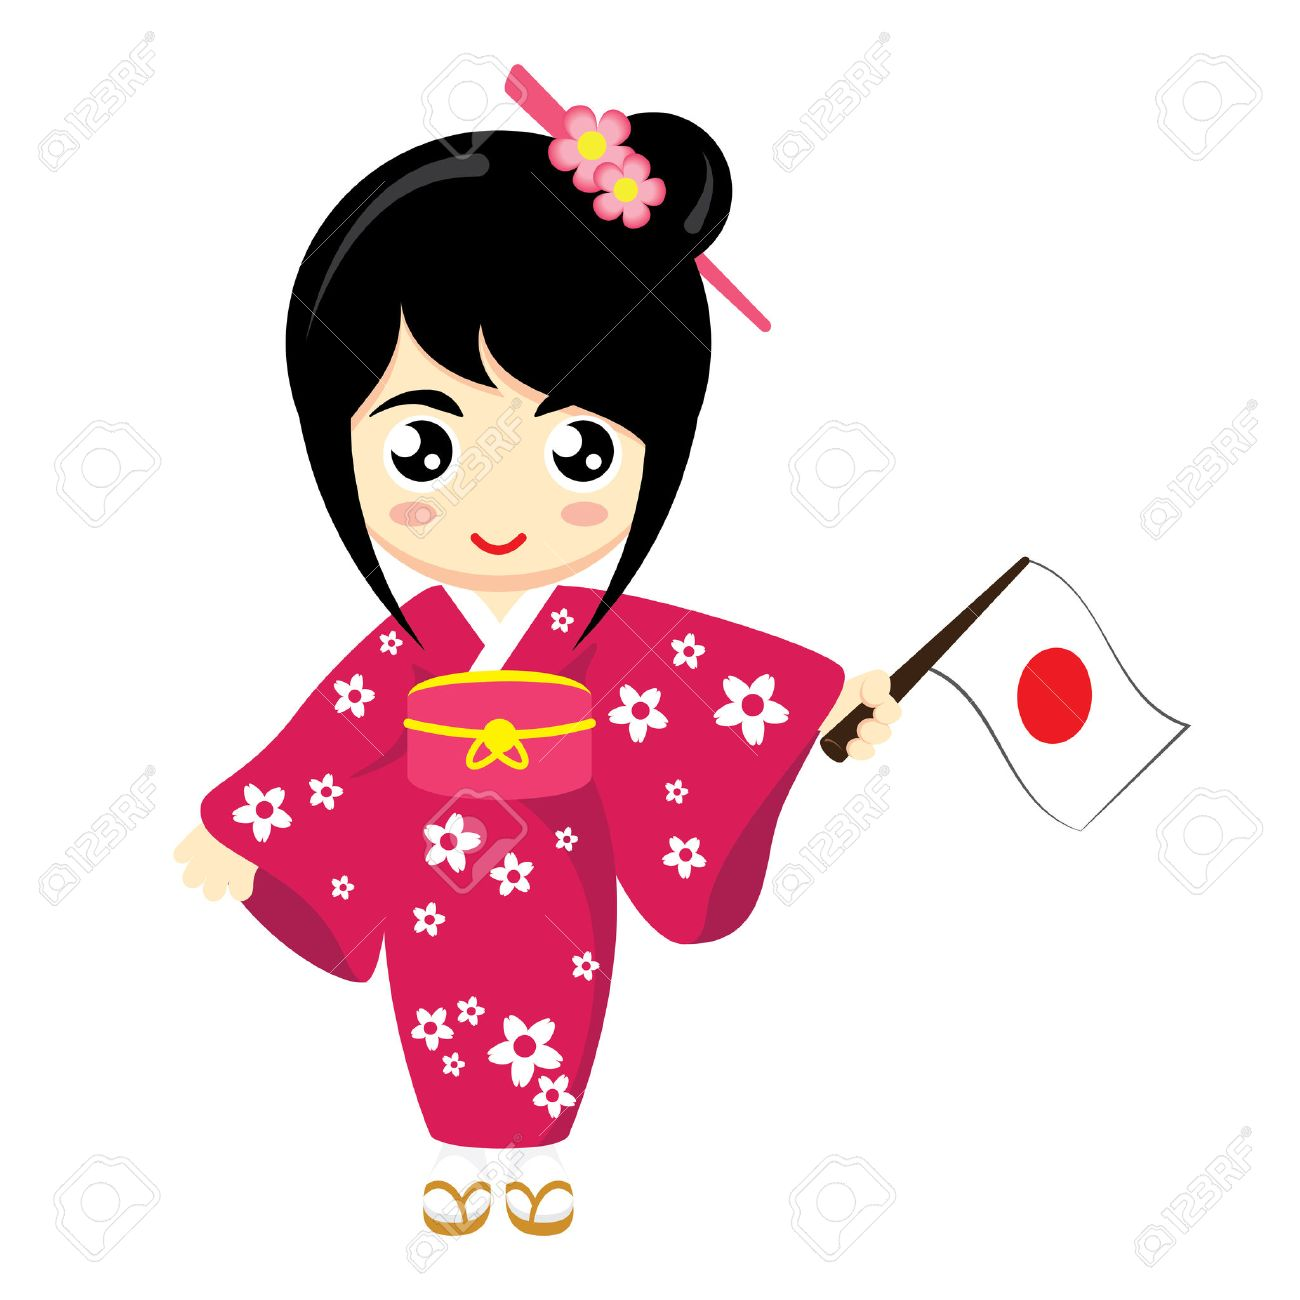 Little Girl Wearing Traditional Dress and Holding Japan flag.